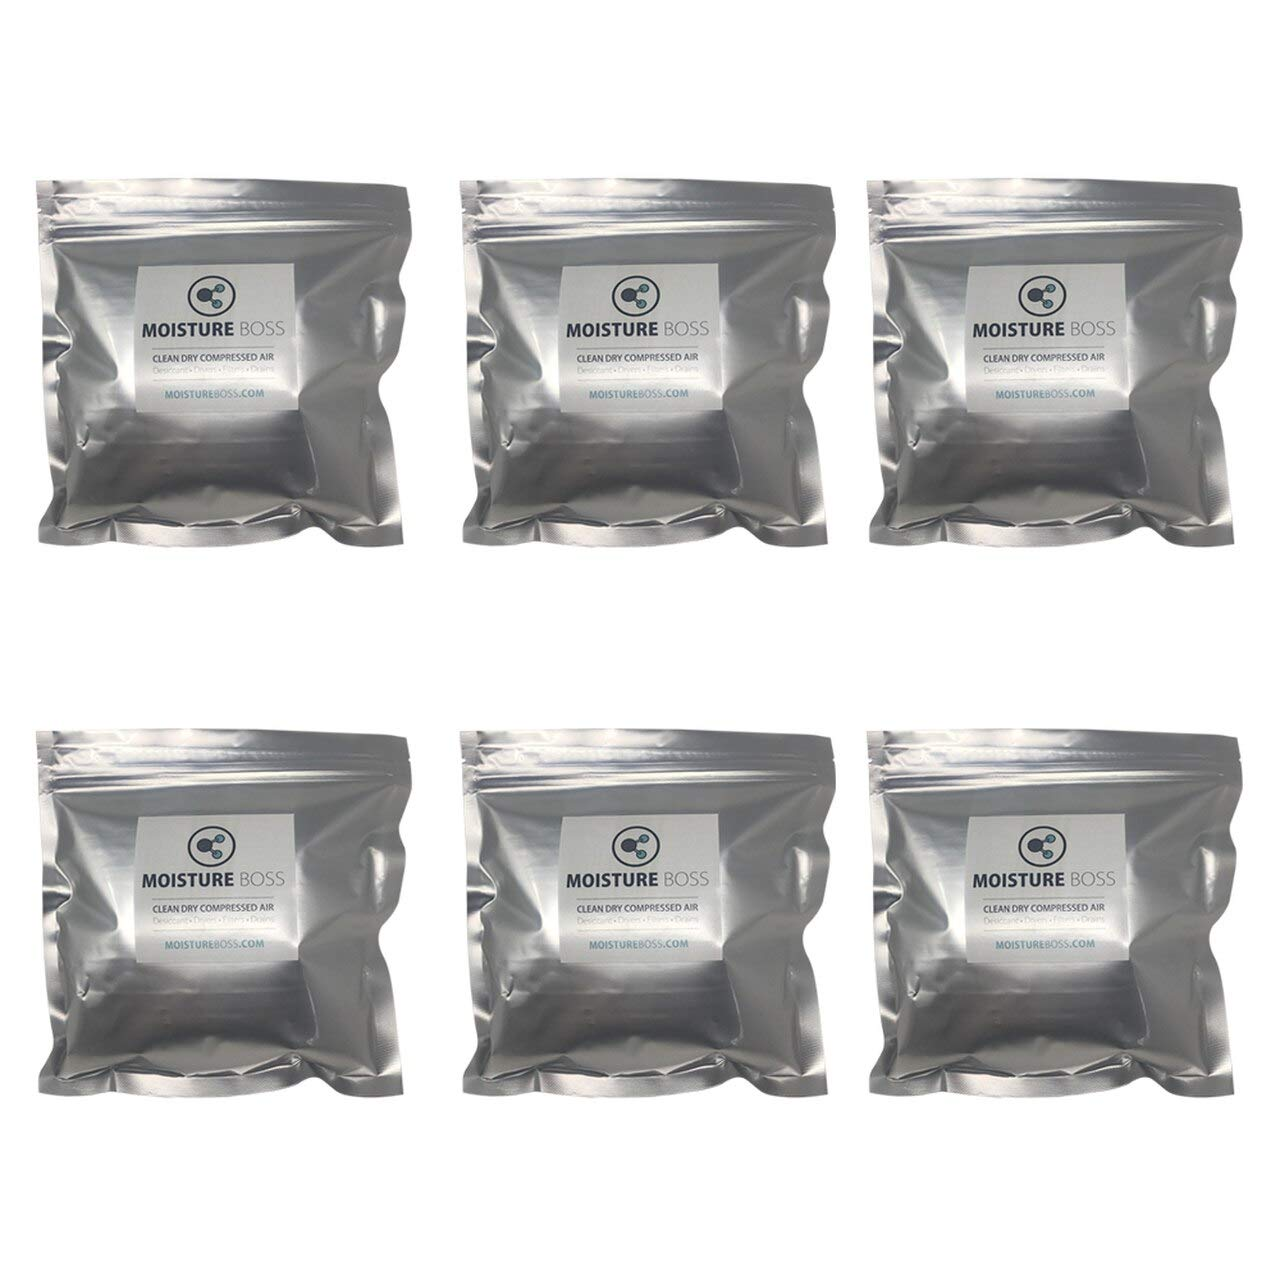 Wilkerson DRP-14-10B/005 Desiccant, 6 Lbs, OEM Equivalent